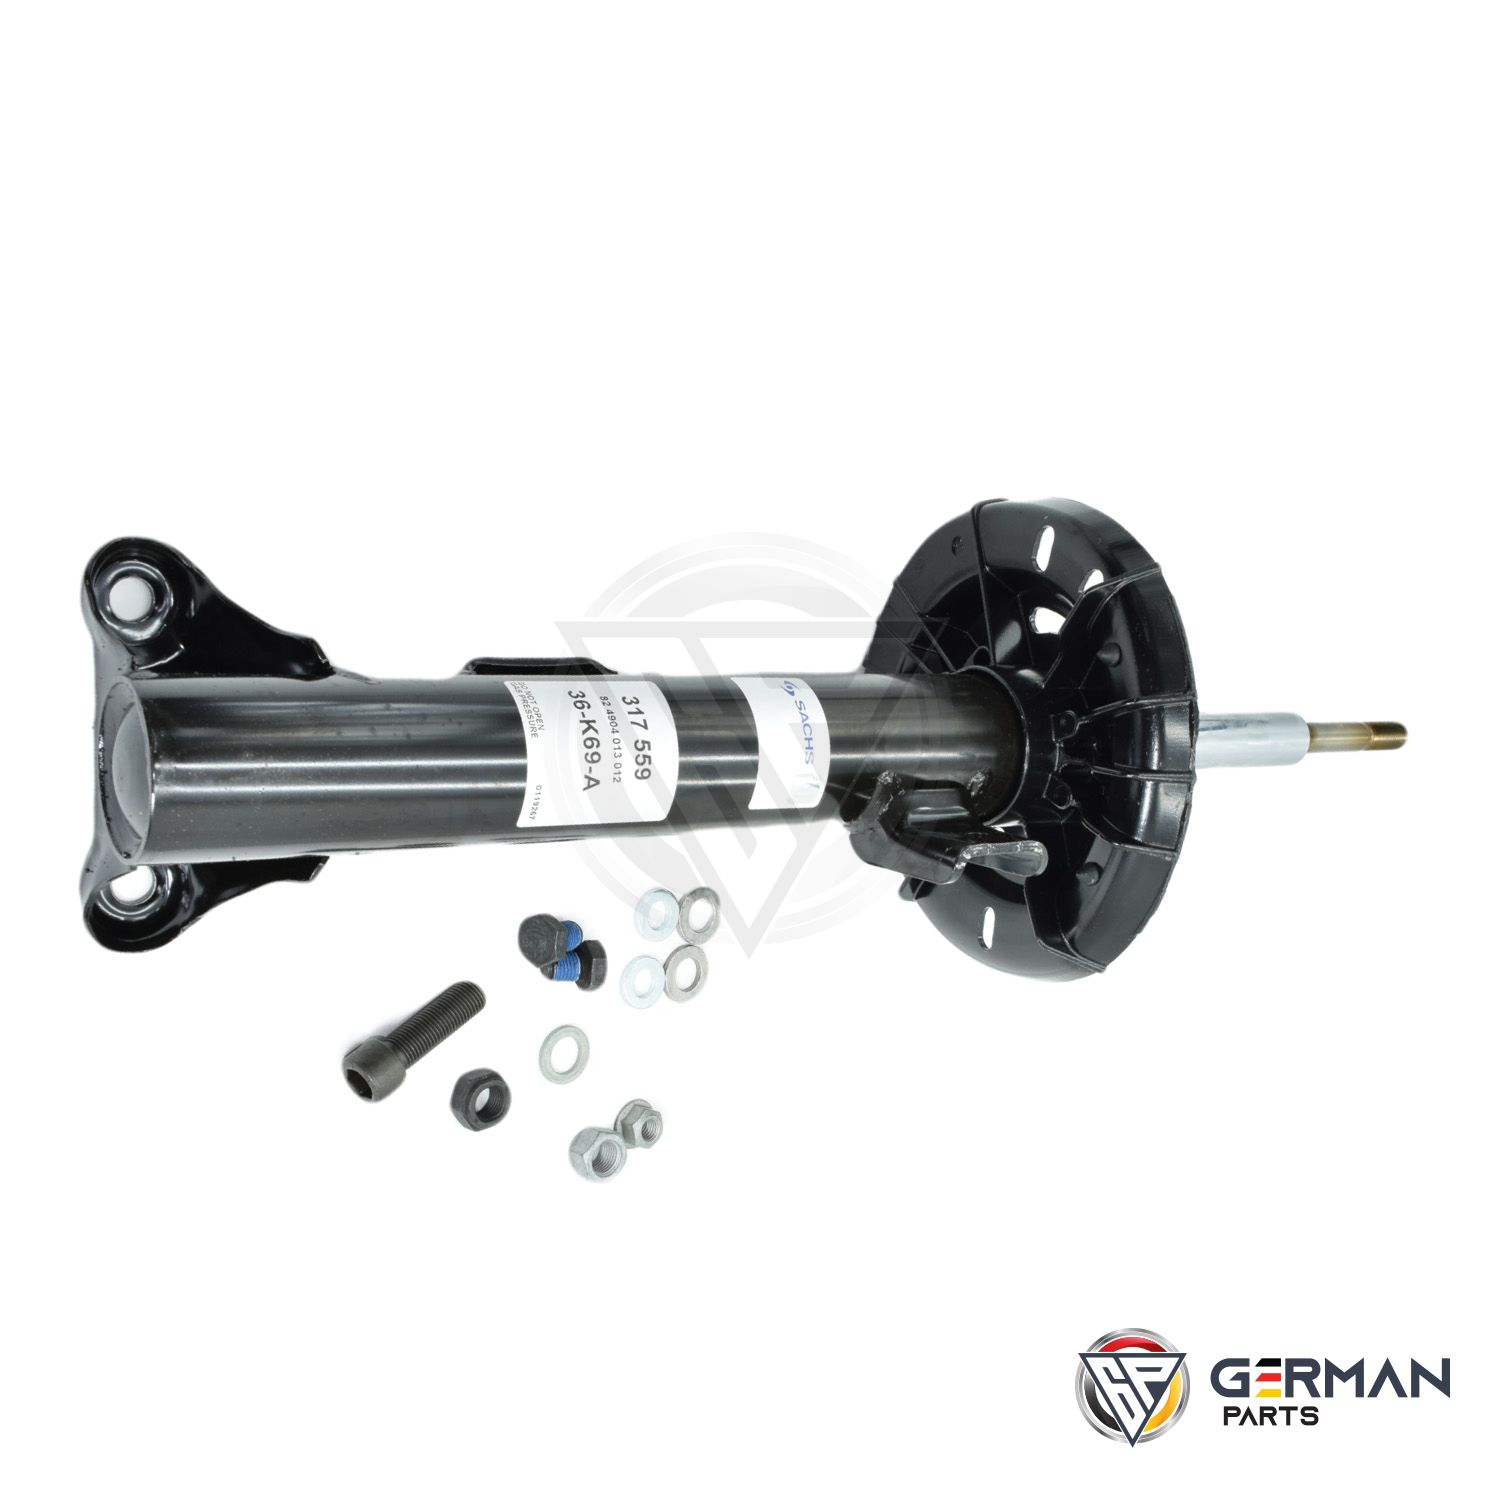 Buy Sachs Front Shock Absorber 2033201330 - German Parts